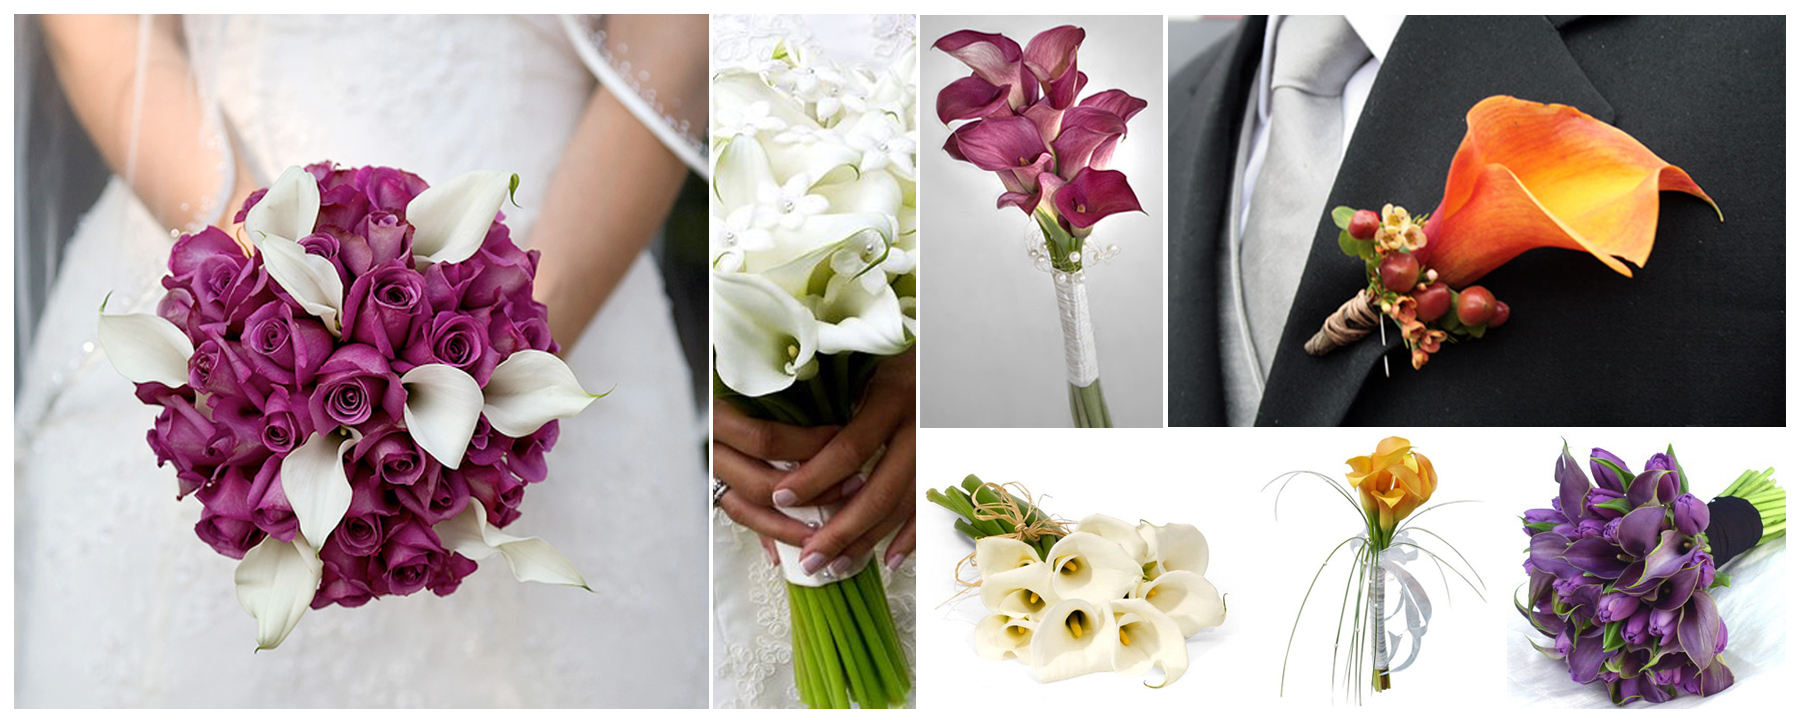 Wedding Flowers And Their Meanings Calla Lily Maybrides Wedding